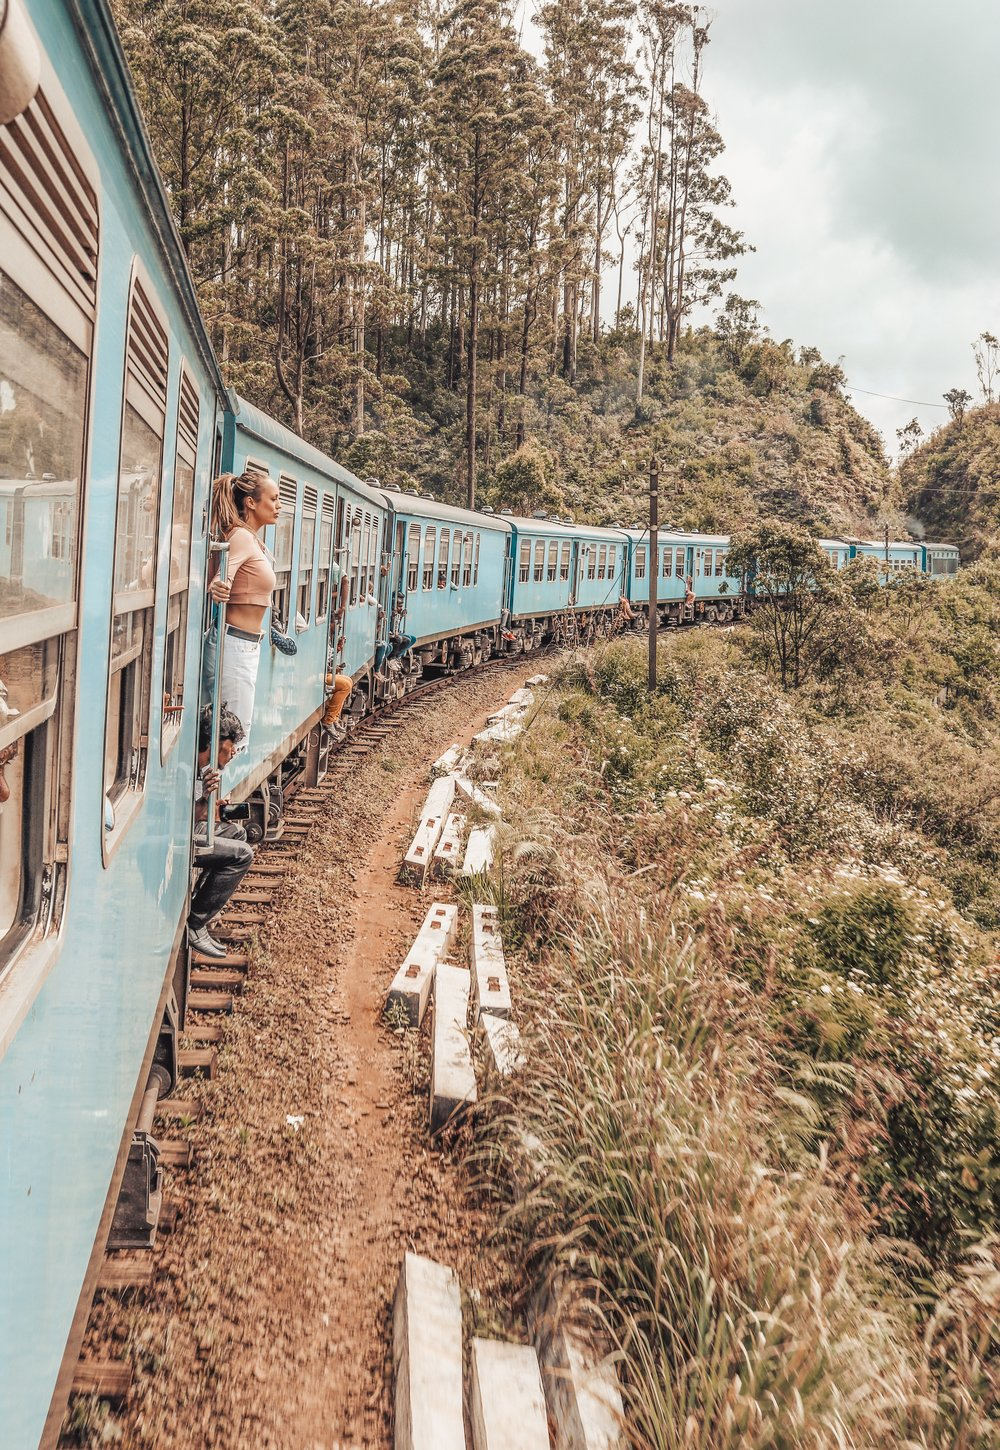 sri-lanka-train.jpg